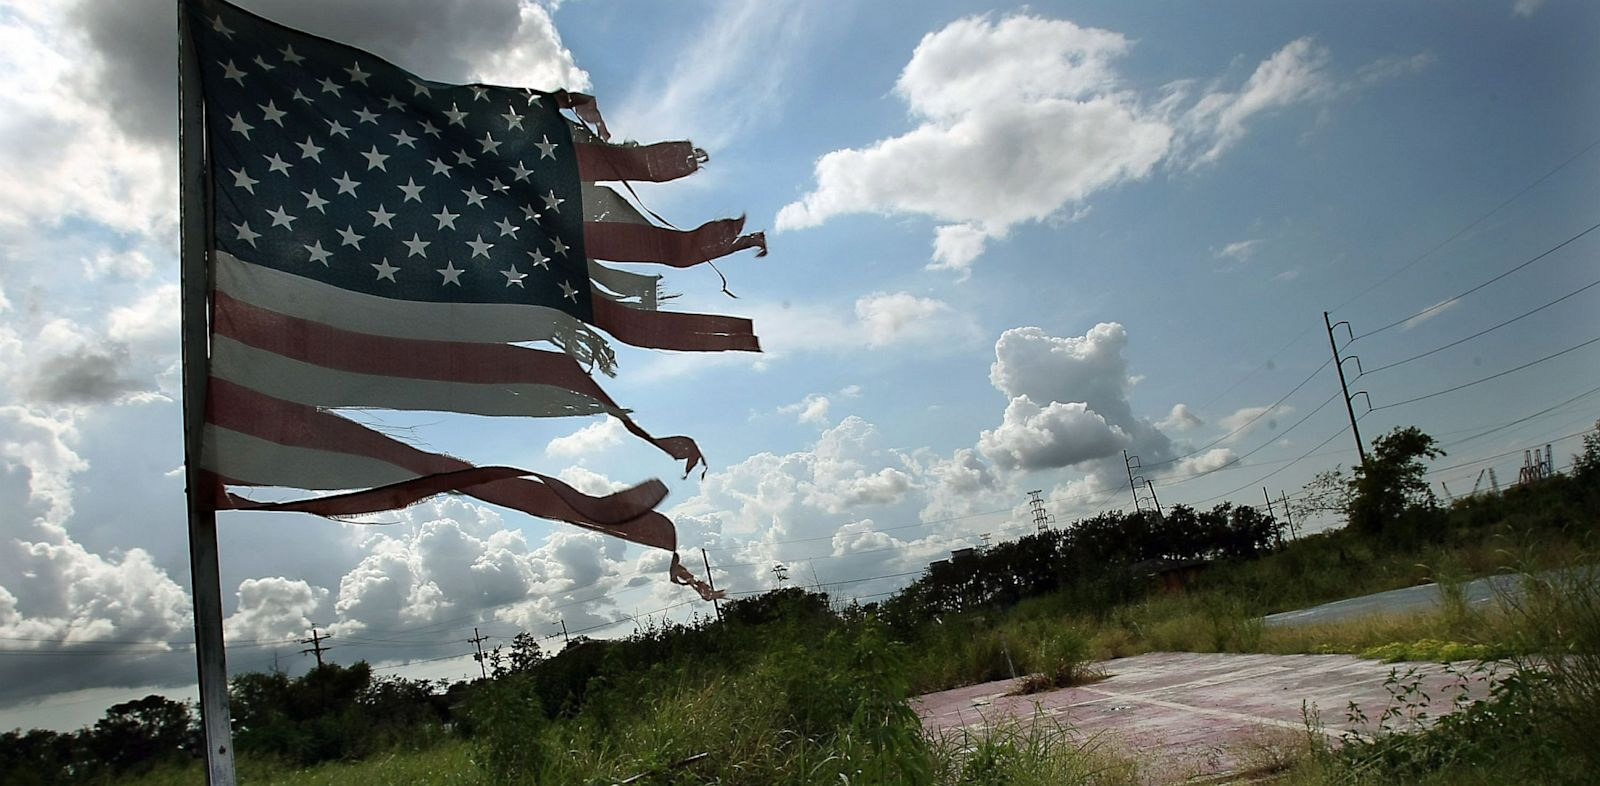 PHOTO: Tattered American flag